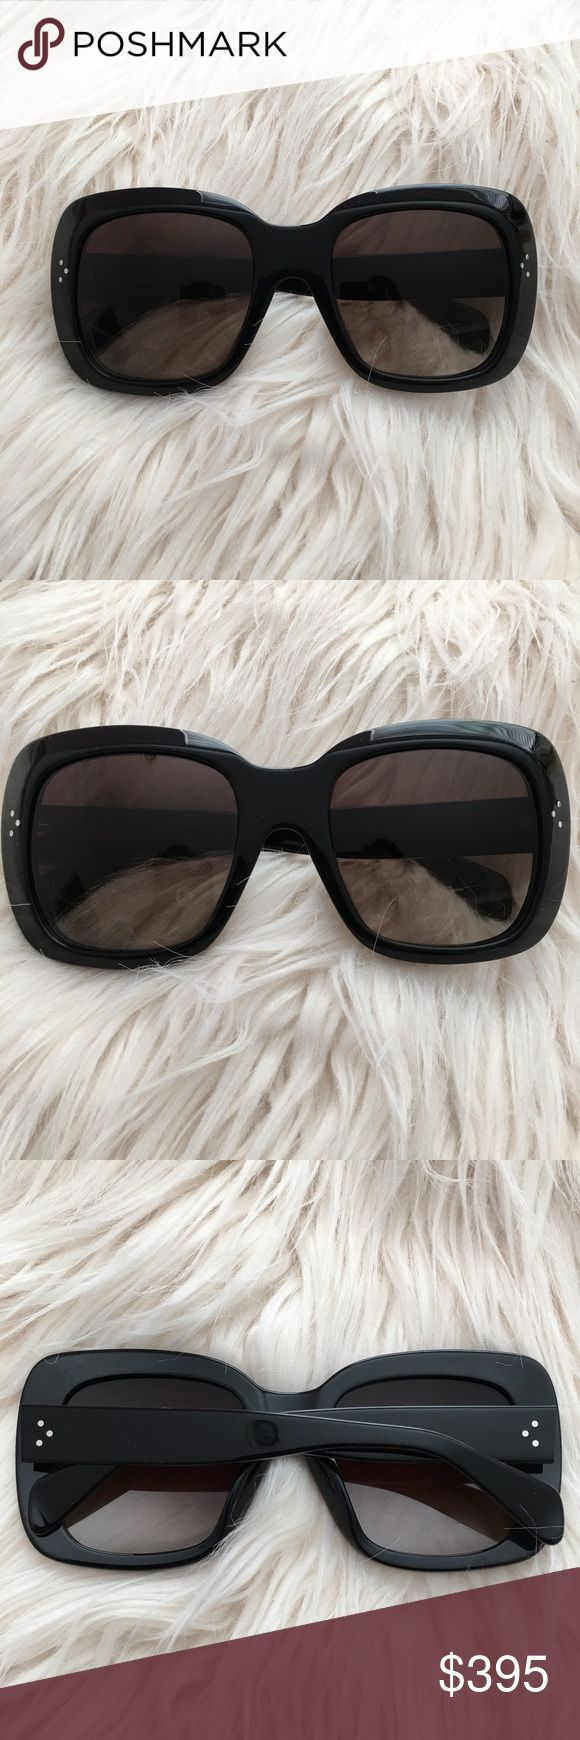 Black Large Square Oversized Celine Sunglasses Brand new without tags. More info and pics on my Tradesy listing! ---------------- For discounts and FREE shipping, buy this from my Tradesy closet. ➕ https://www.tradesy.com/closet/leslielove/ ➕ Even bigger discounts directly through 🅿️🅿️ Celine Accessories Sunglasses